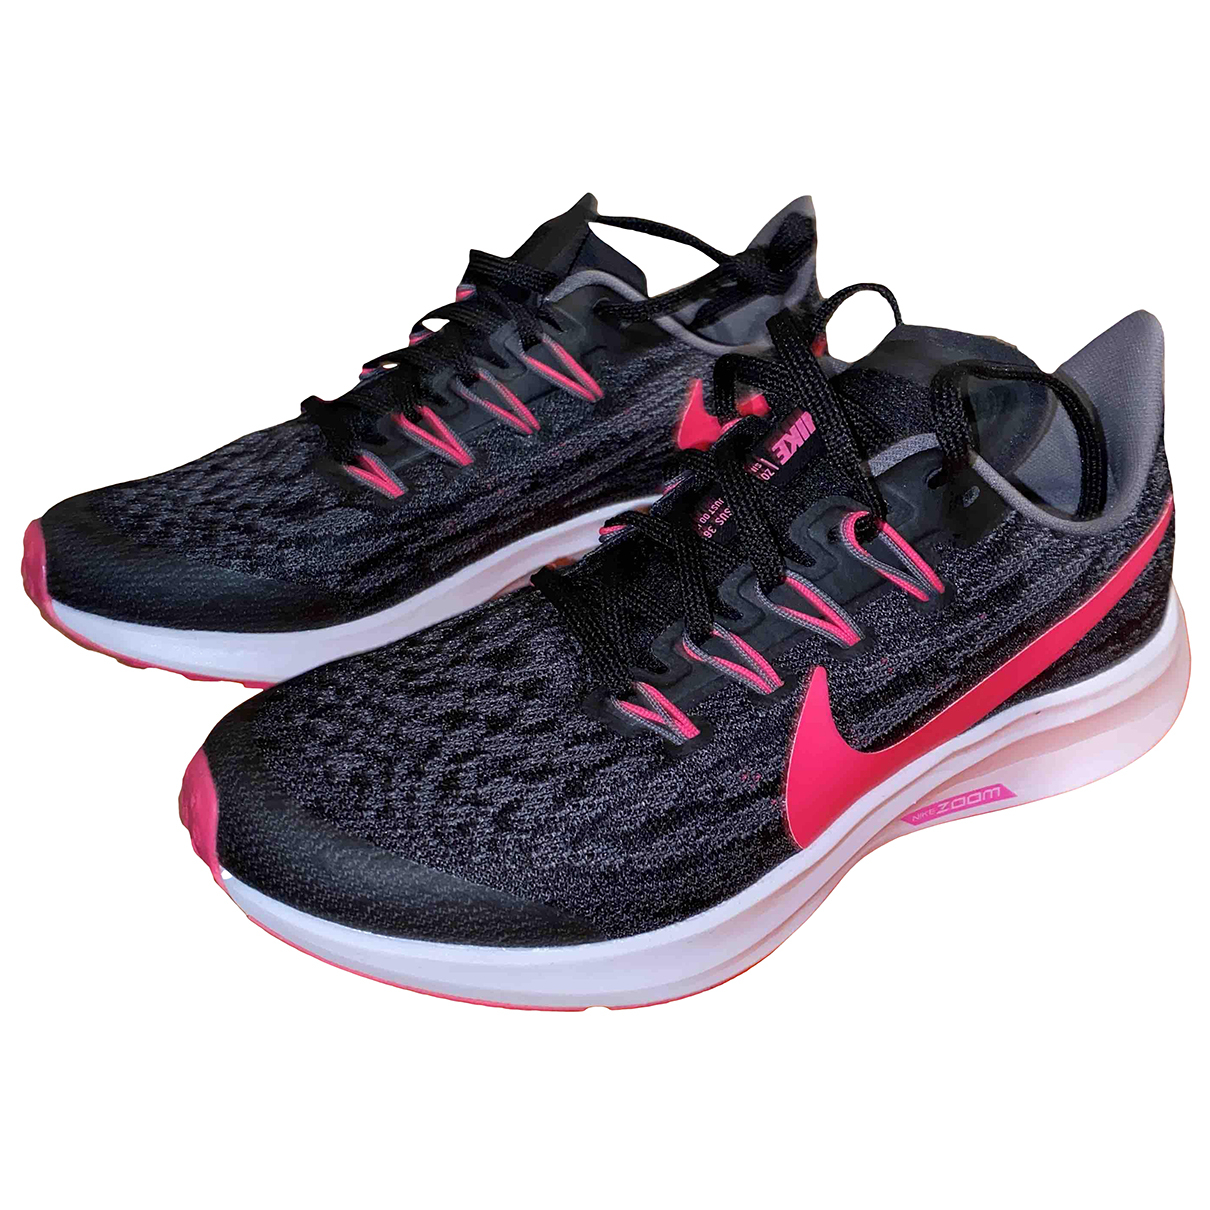 Nike - Baskets Air Zoom Pegasus pour femme - rose